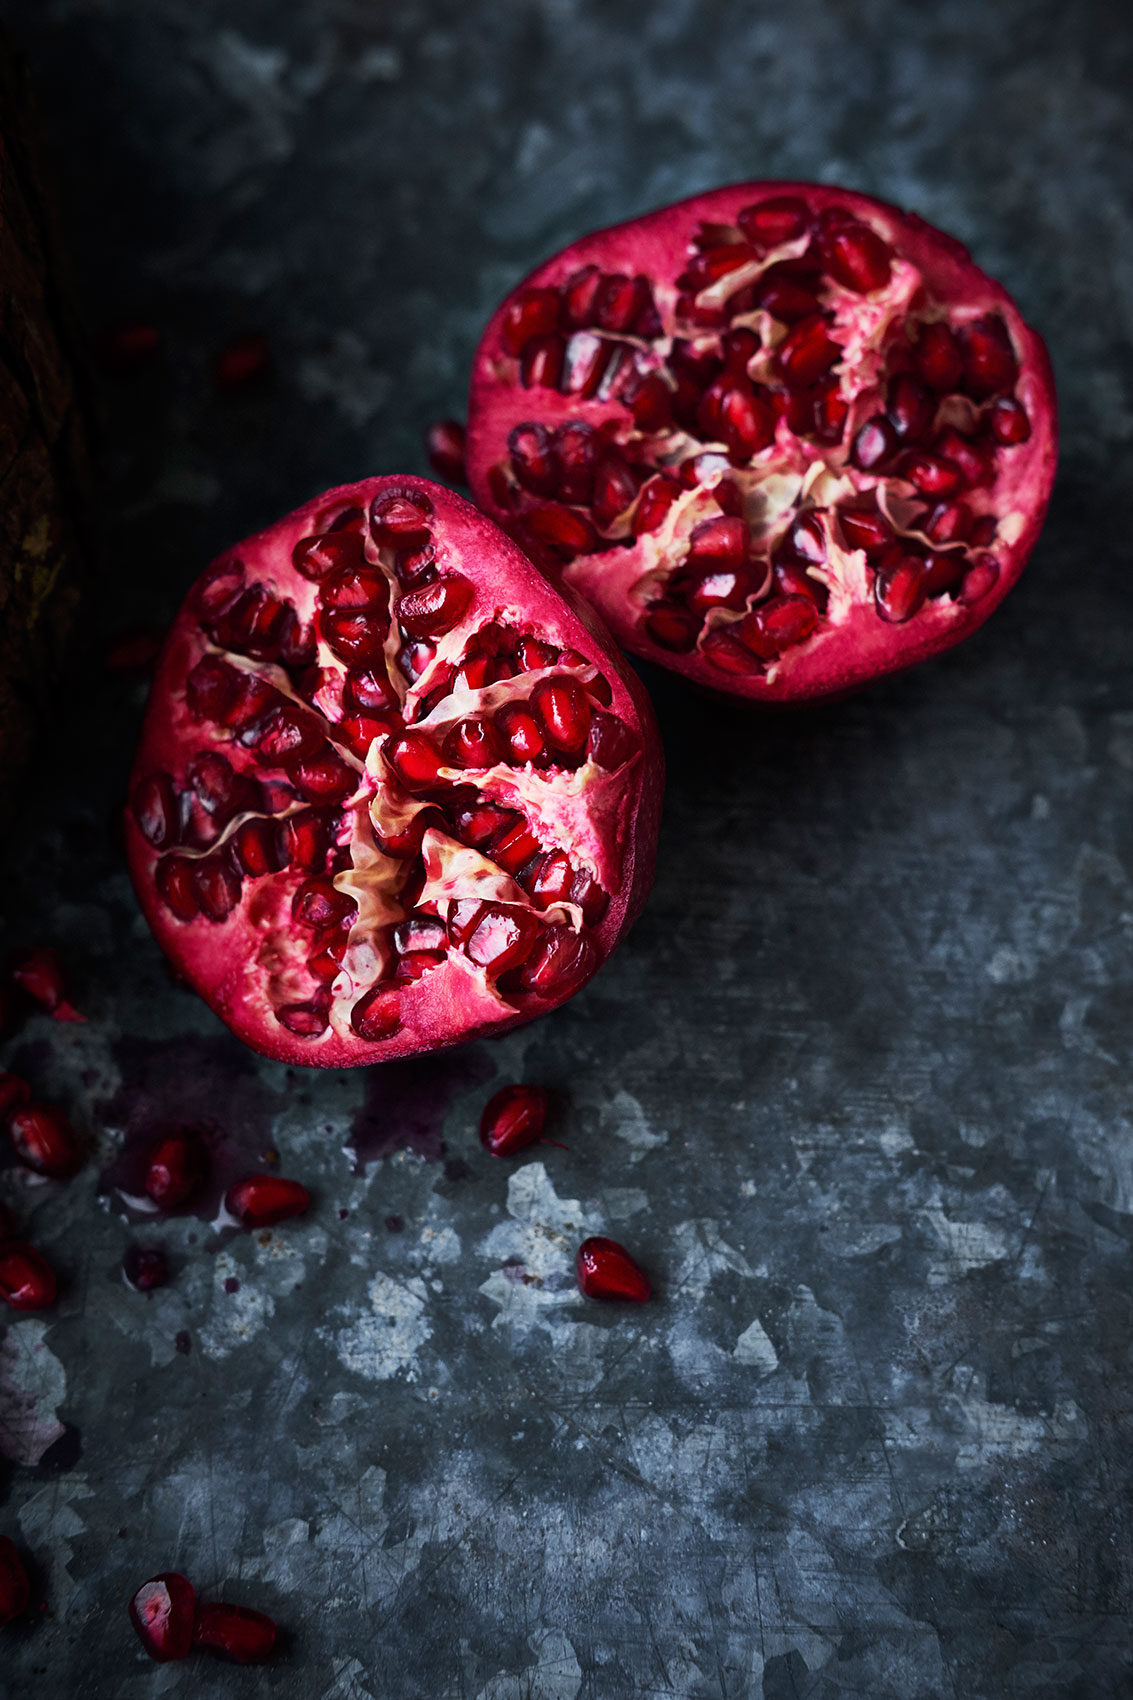 PB_MyIndianKitchen_Incidental_Pomegranate